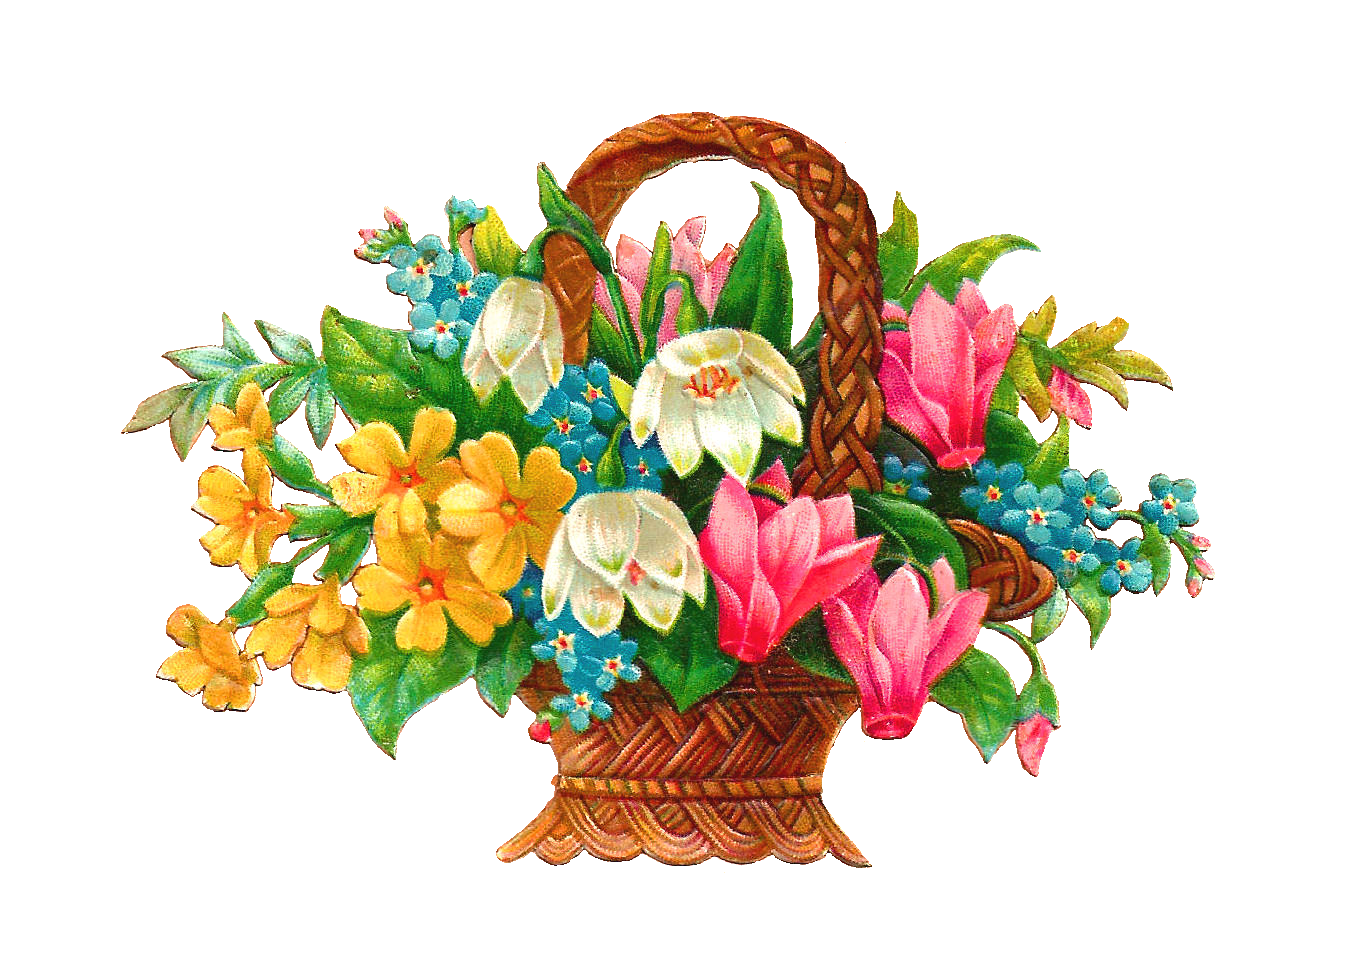 Flower Baskets Photos : Antique images free flower basket clip art wicket